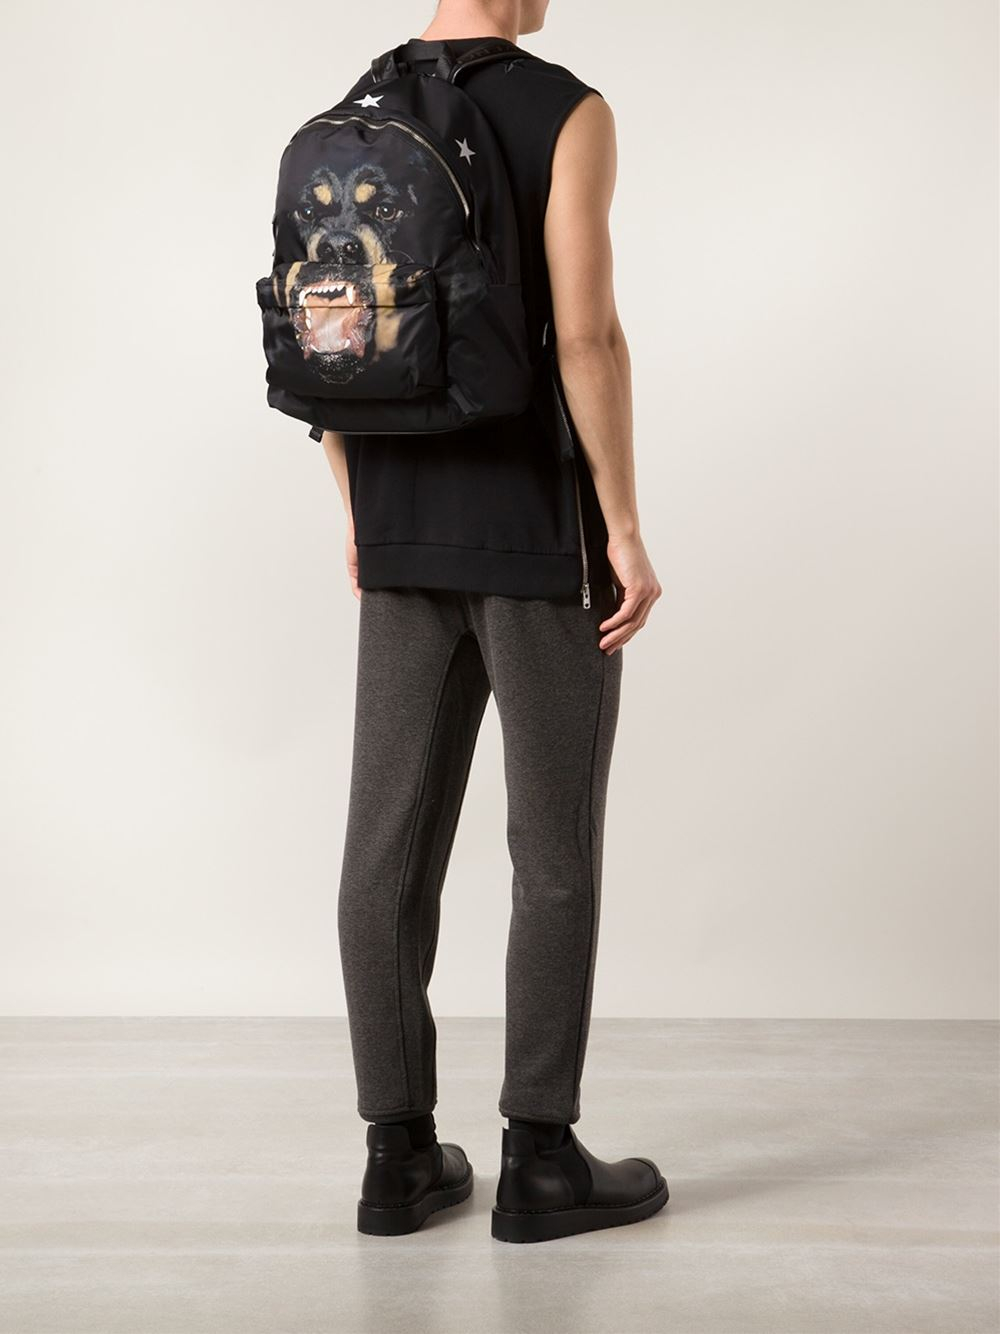 Lyst - Givenchy Rottweiler Print Backpack in Black for Men 44768806a6d2b